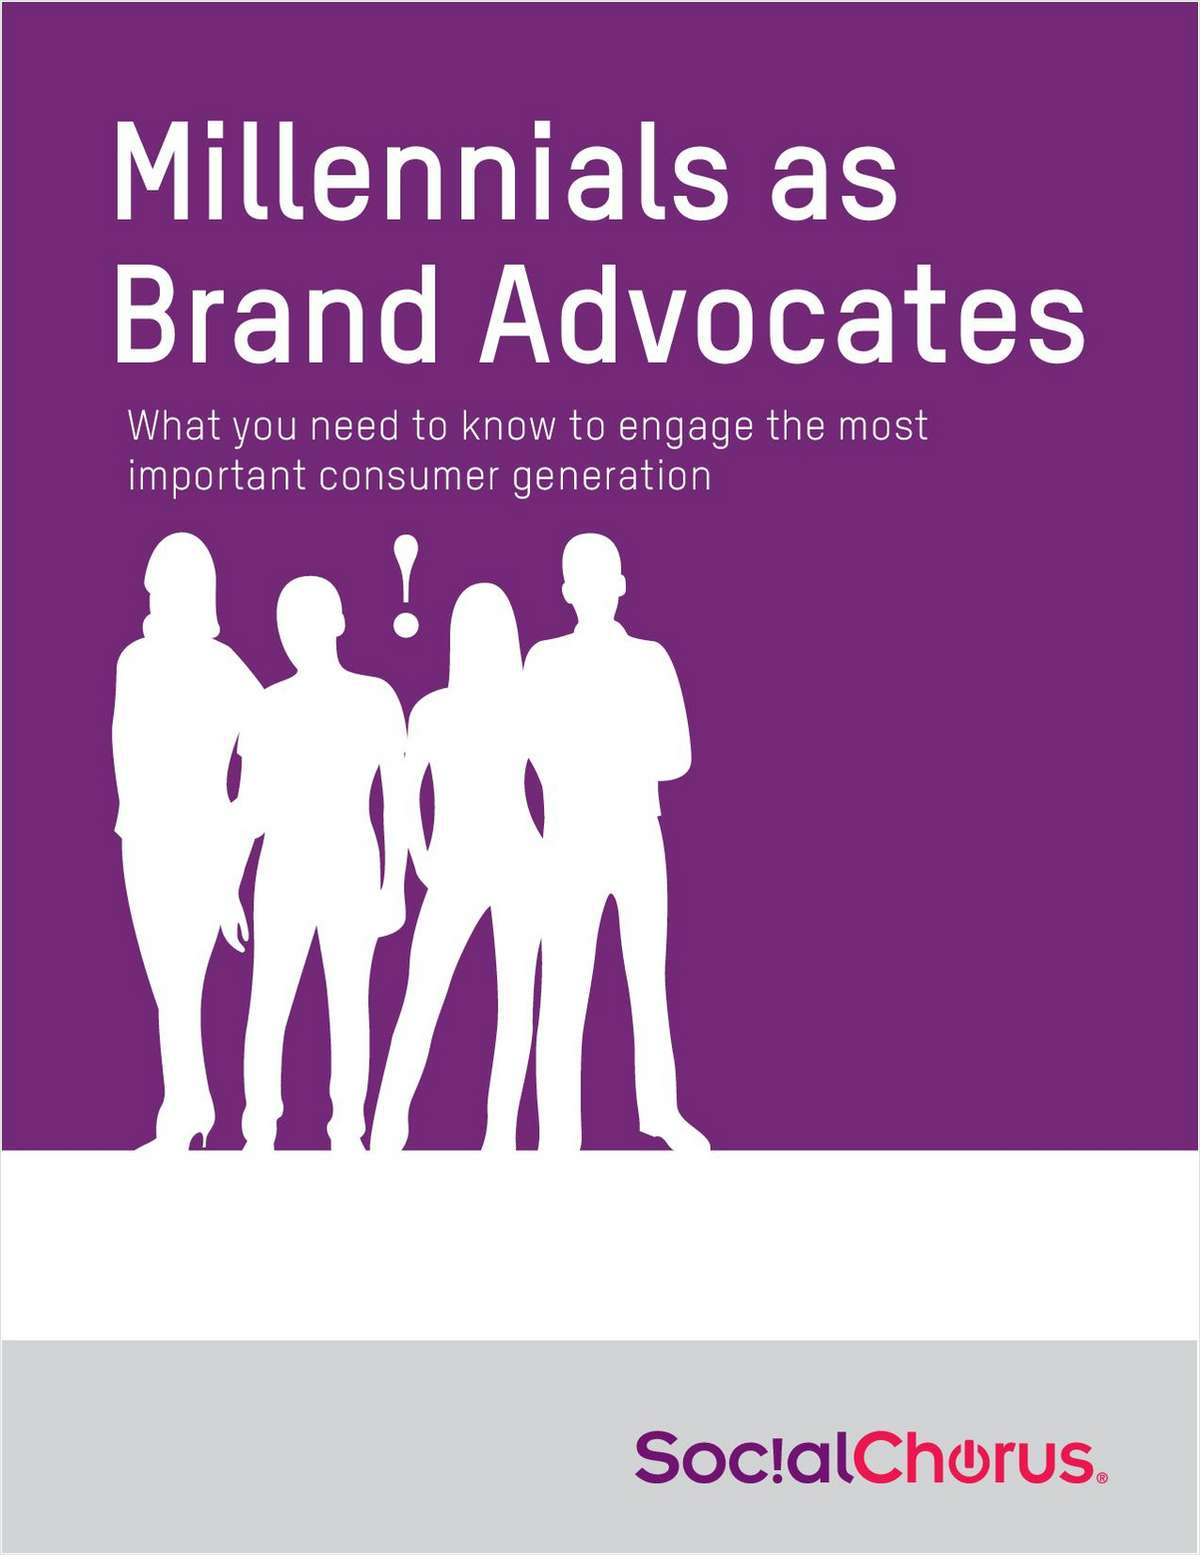 Millennials as Brand Advocates - New Research Study Results